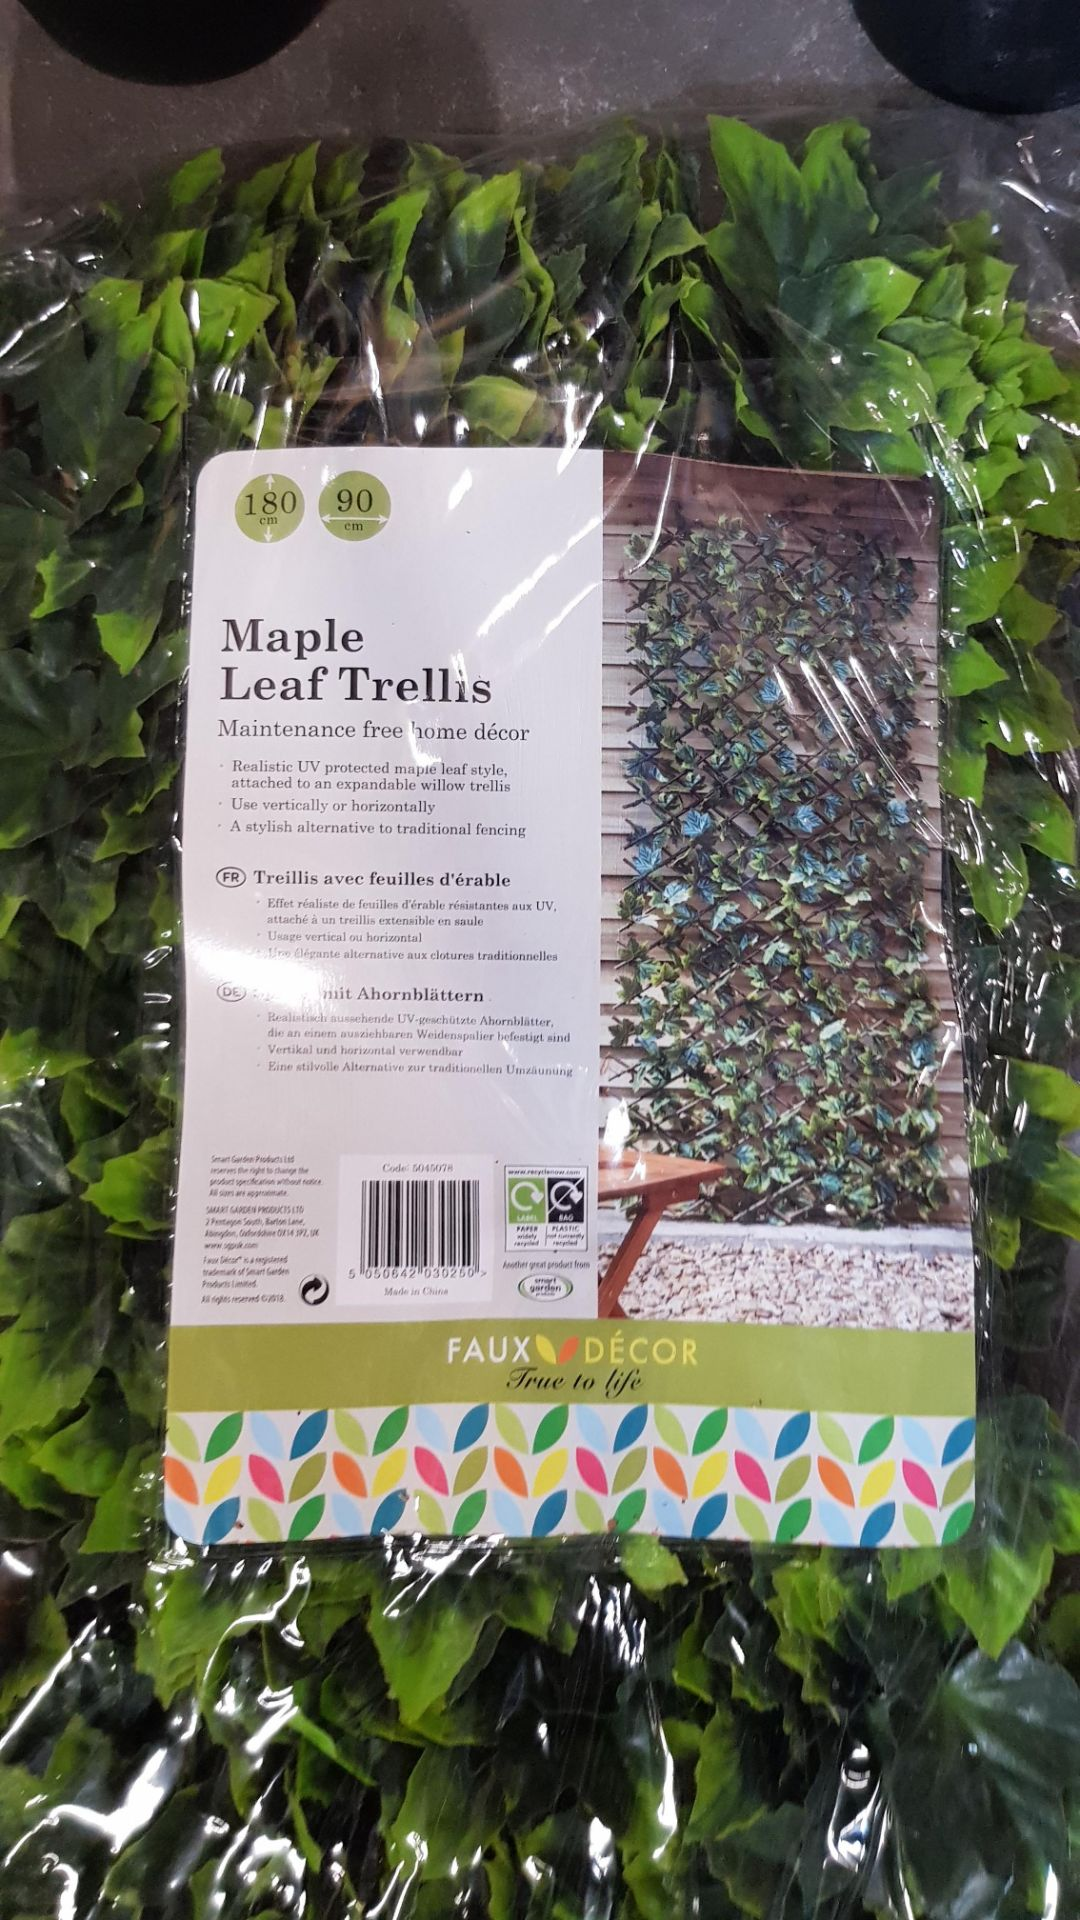 (4P) 3x Garden Items. 2x Artificial Olive Tree (With Tags) RRP £39 Each. 1x Maple Leaf Trellis (Sea - Image 6 of 6